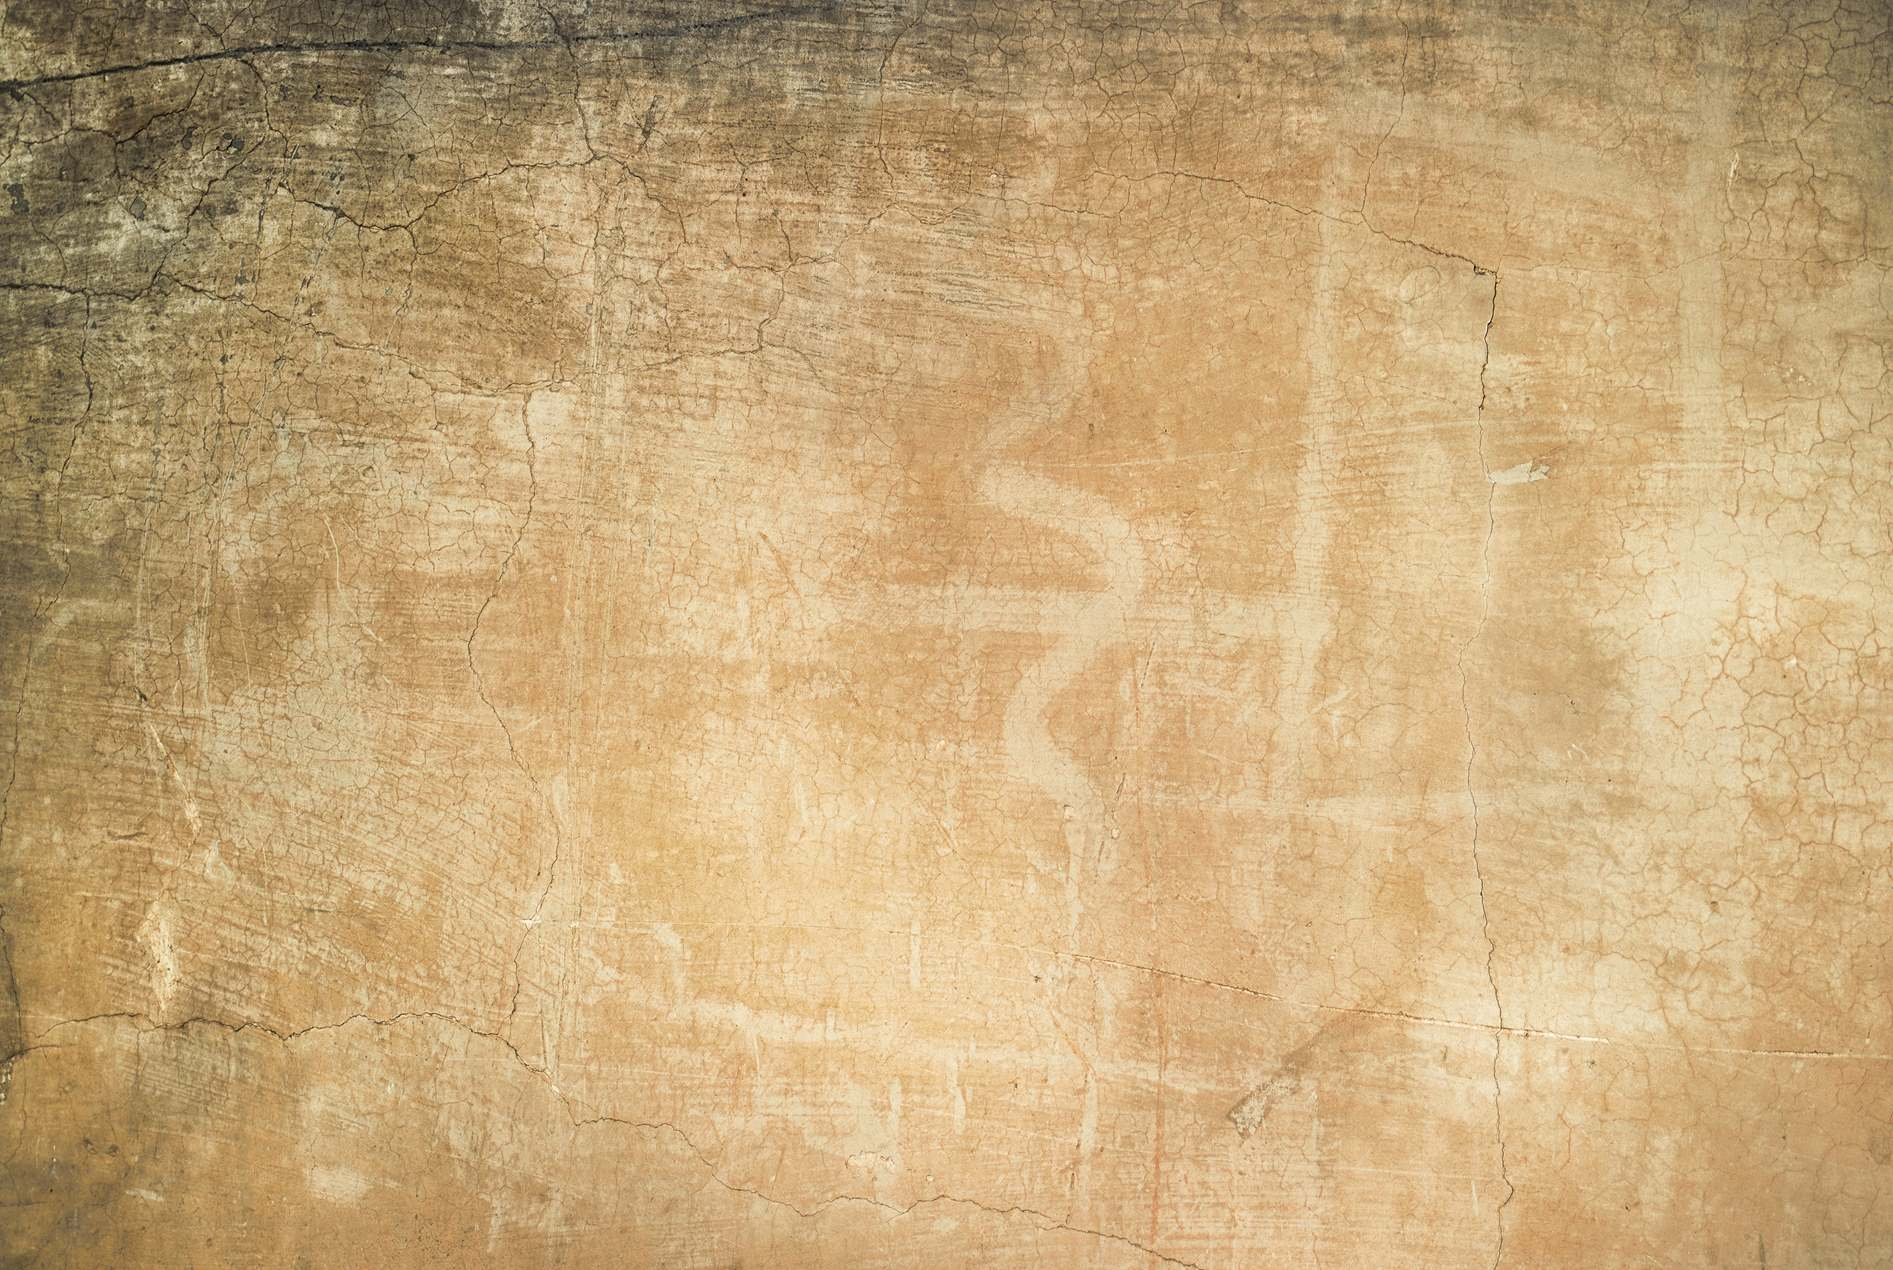 Vintage yellow wall texture background photohdx for Textures and backgrounds